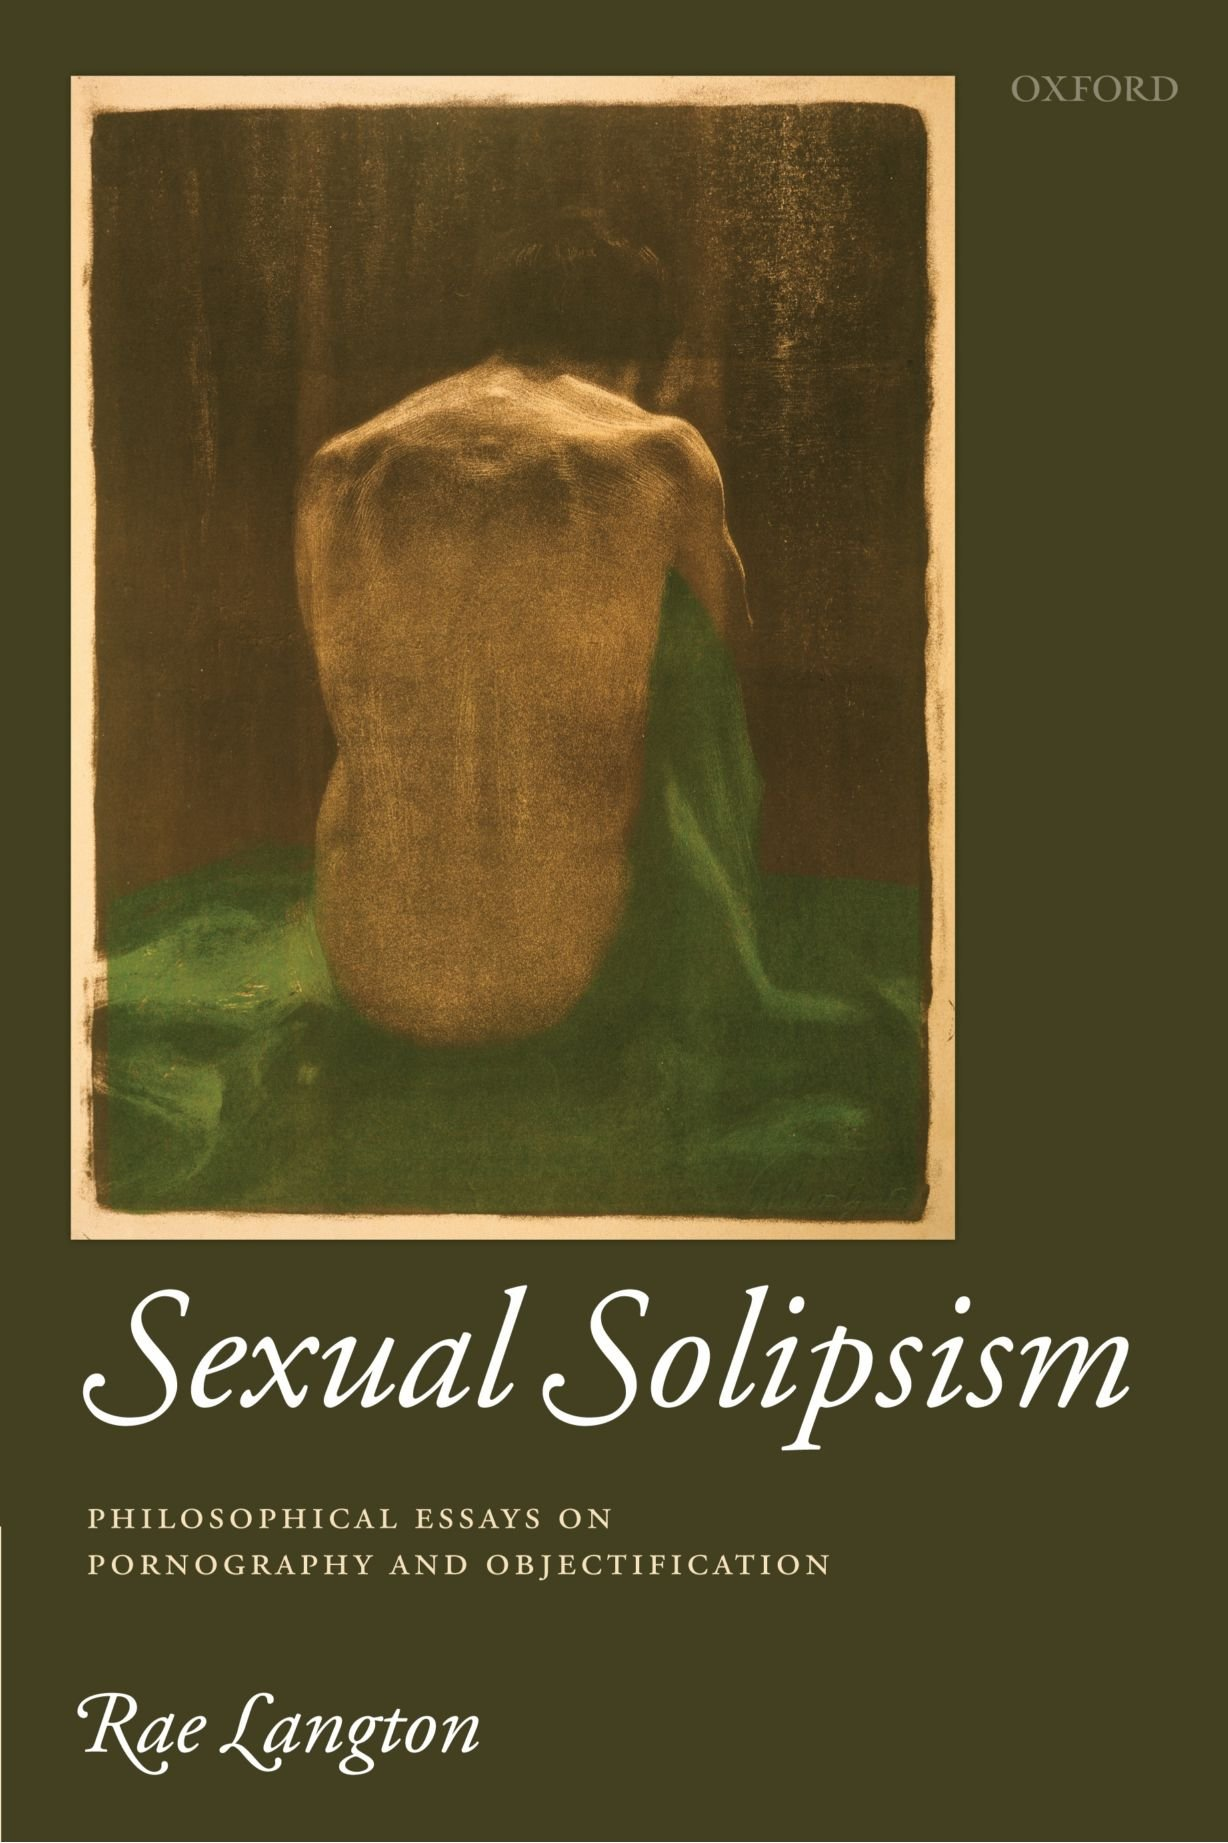 sexual solipsism philosophical essays on pornography and sexual solipsism philosophical essays on pornography and objectification amazon co uk rae langton 9780199551453 books